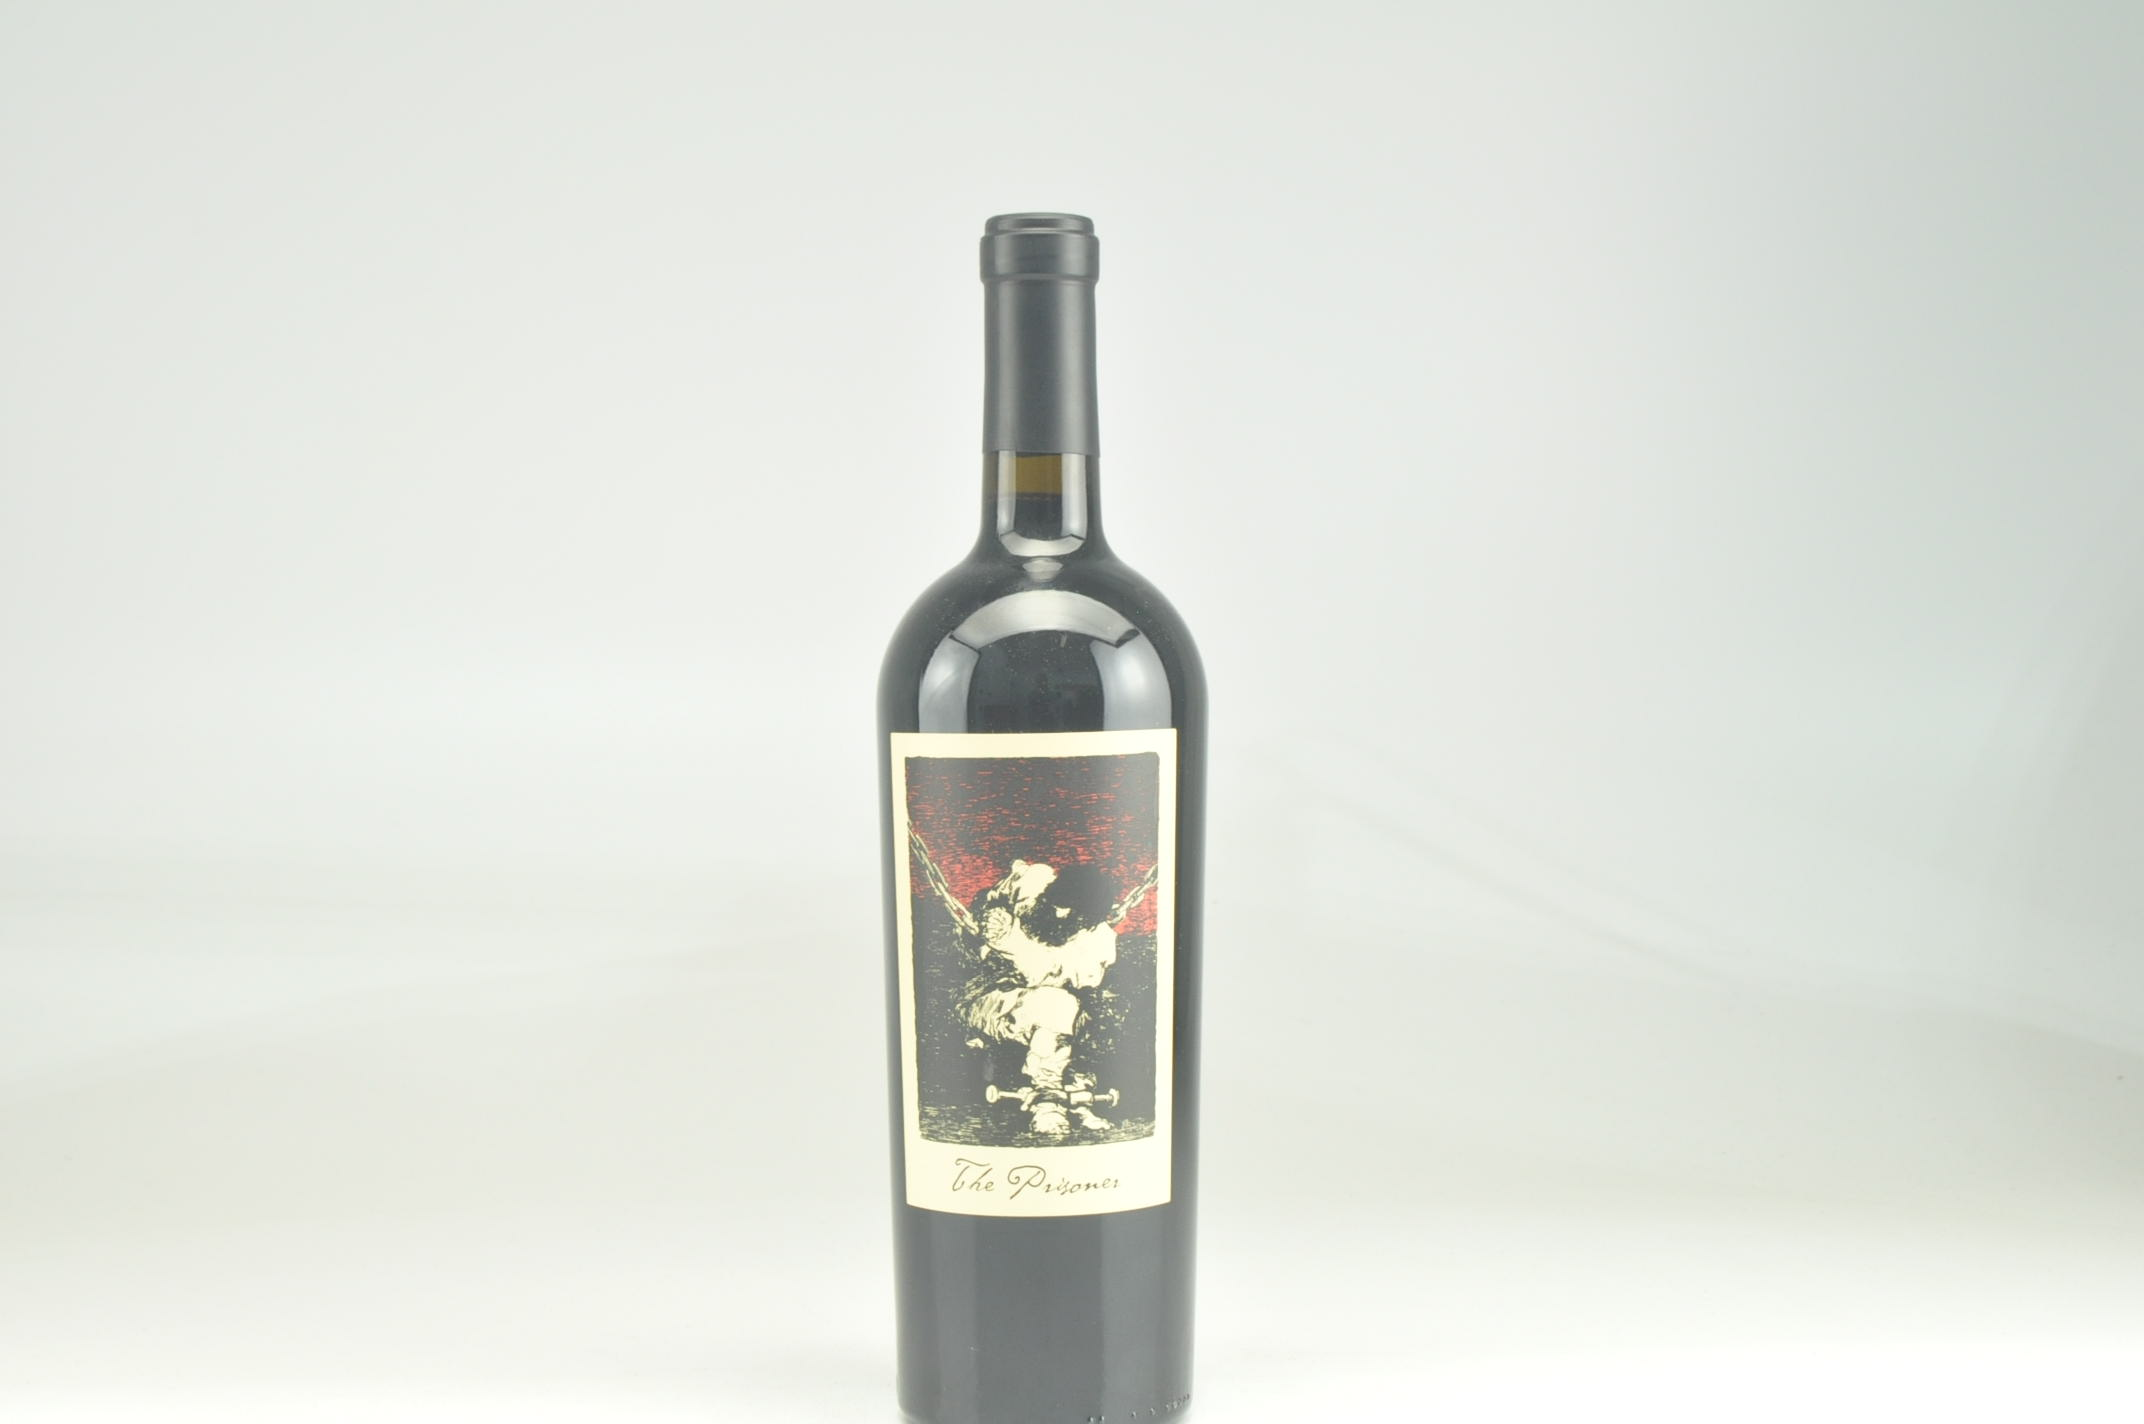 2018 The Prisoner Wine Co. The Prisoner